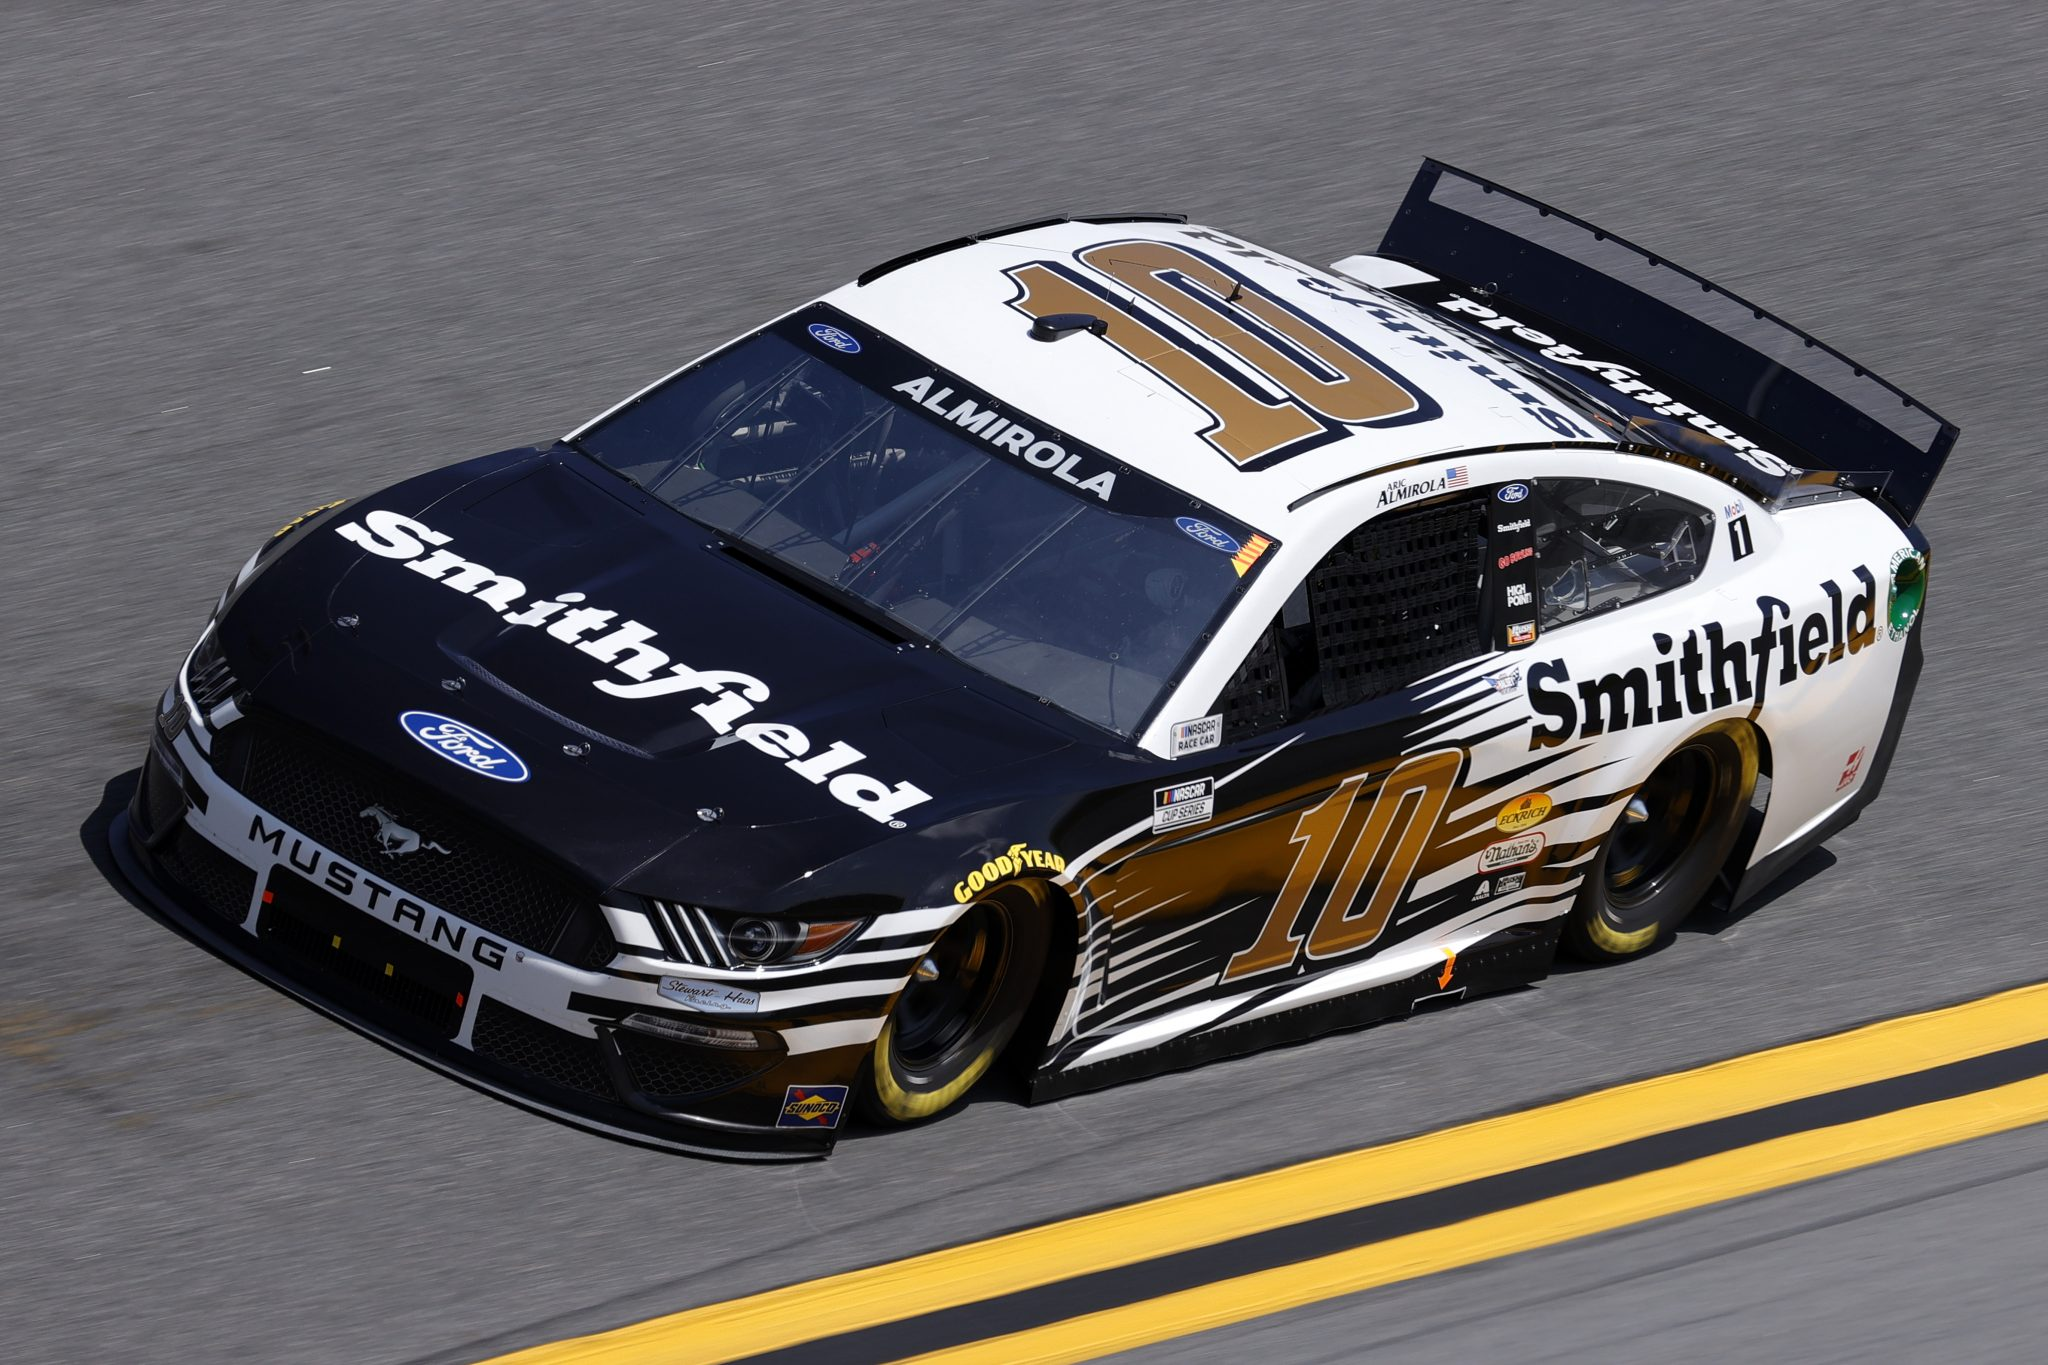 DAYTONA BEACH, FLORIDA - FEBRUARY 10: Aric Almirola, driver of the #10 Smithfield Ford, drives during practice for the NASCAR Cup Series 63rd Annual Daytona 500 at Daytona International Speedway on February 10, 2021 in Daytona Beach, Florida. (Photo by Jared C. Tilton/Getty Images) | Getty Images